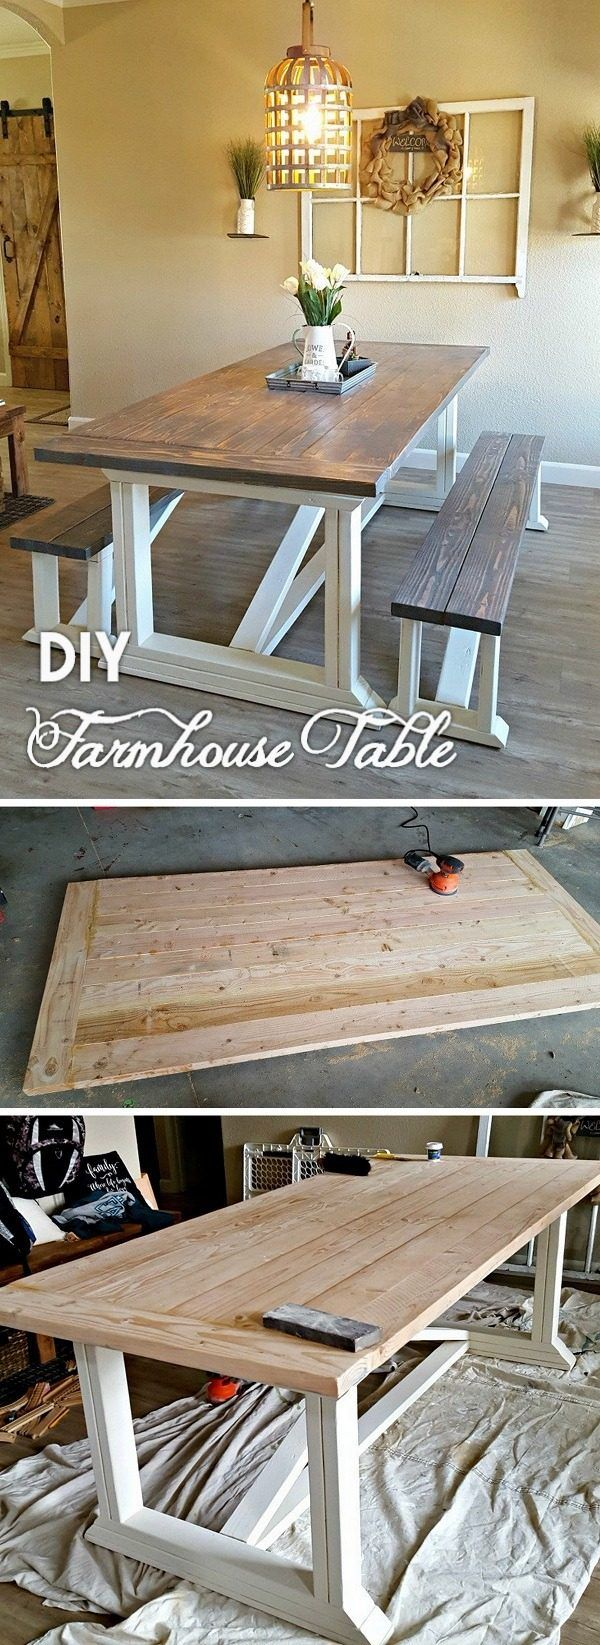 23 Easy DIY Farmhouse Table Ideas with Plans and Instructions